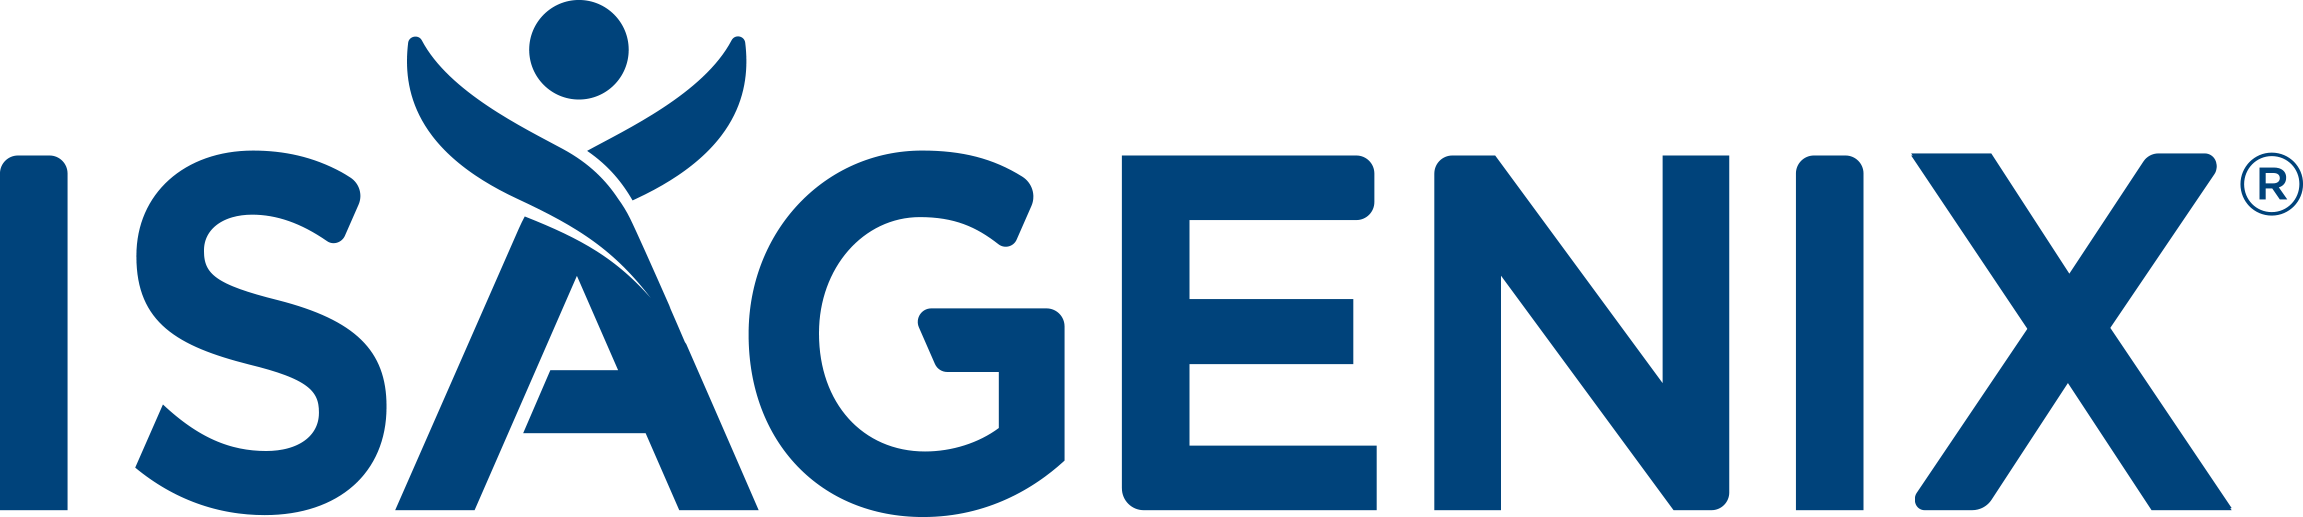 Isagenix Tertiary Logo Blue CMYK